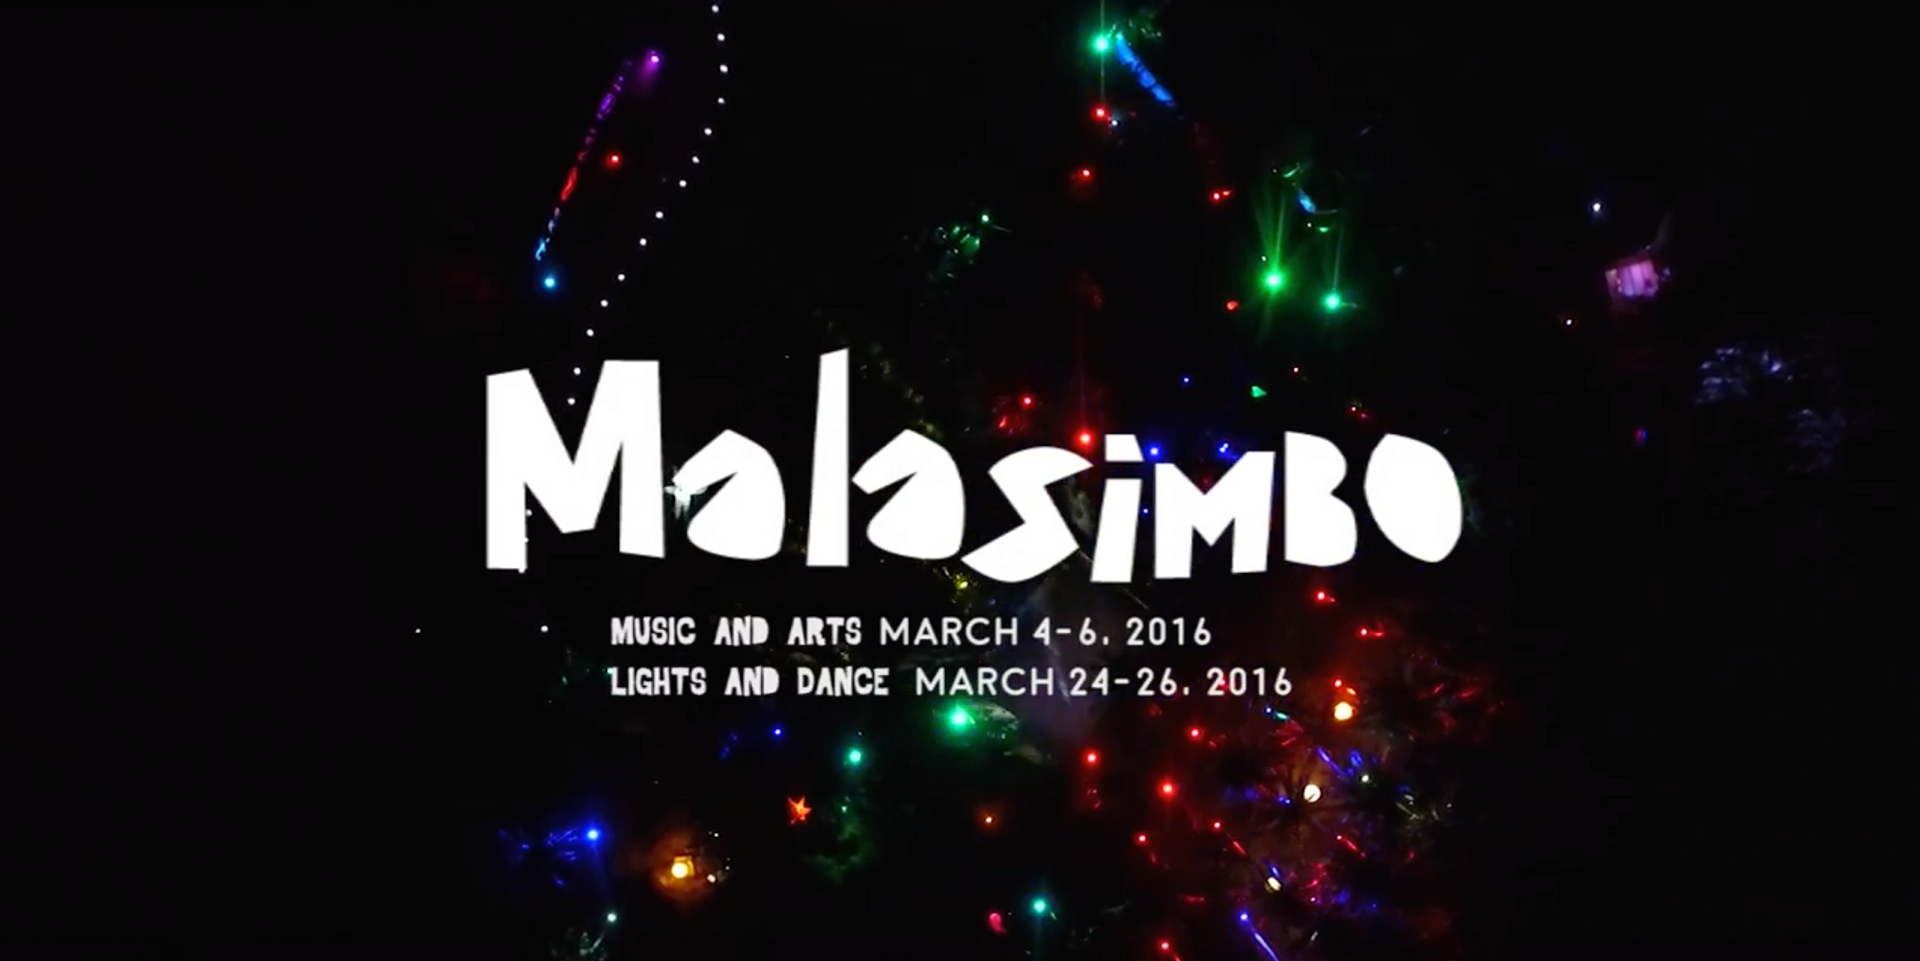 WATCH: Malasimbo Festival official video recap of the 2016 edition